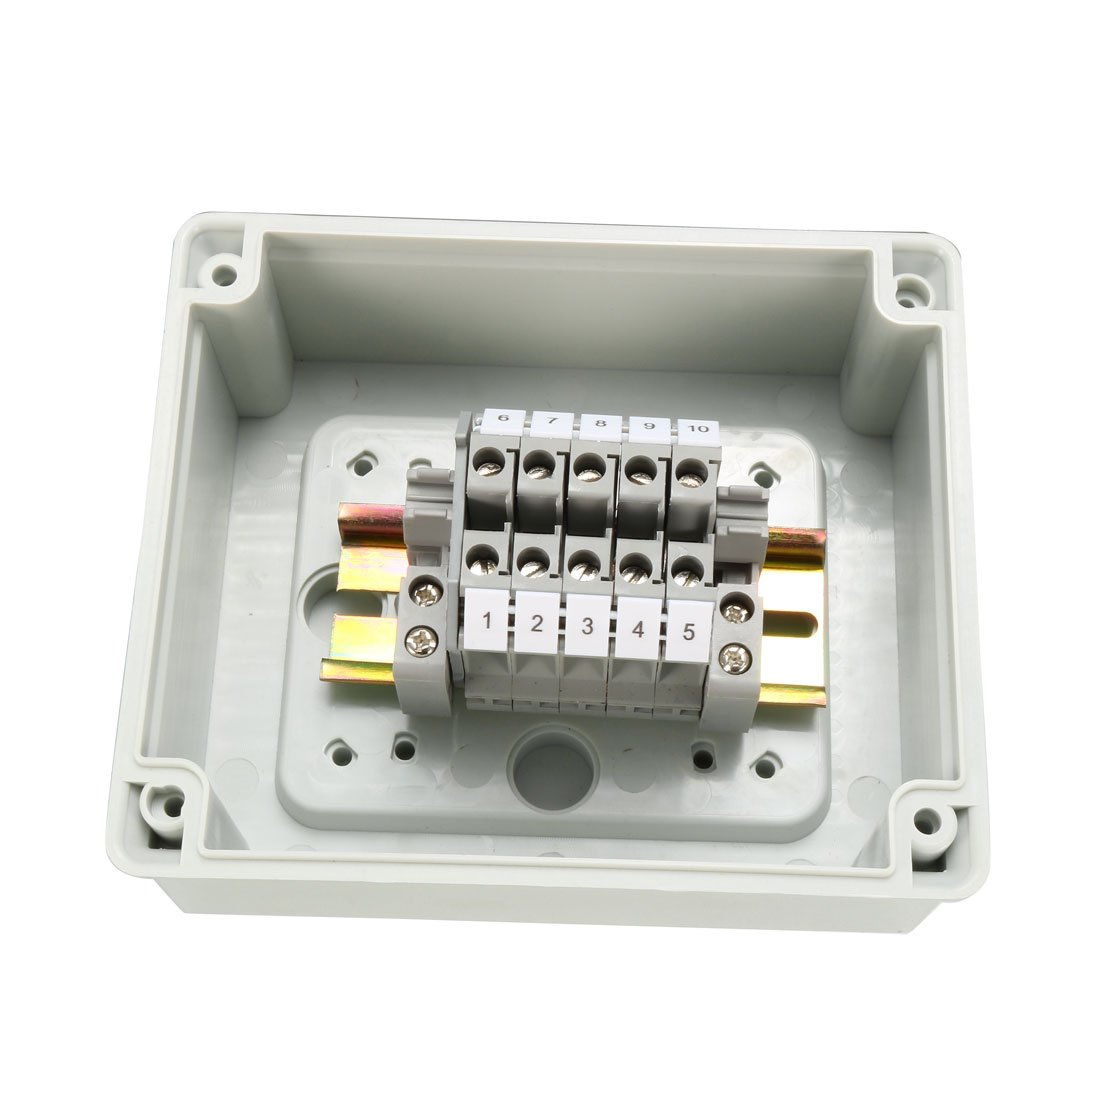 uxcell 5.5''x4.7''x2.8''(139mmx119mmx70mm) ABS Flame Retardant Dustproof IP65 Junction Box Universal Project Enclosure w 5Terminal by uxcell (Image #2)